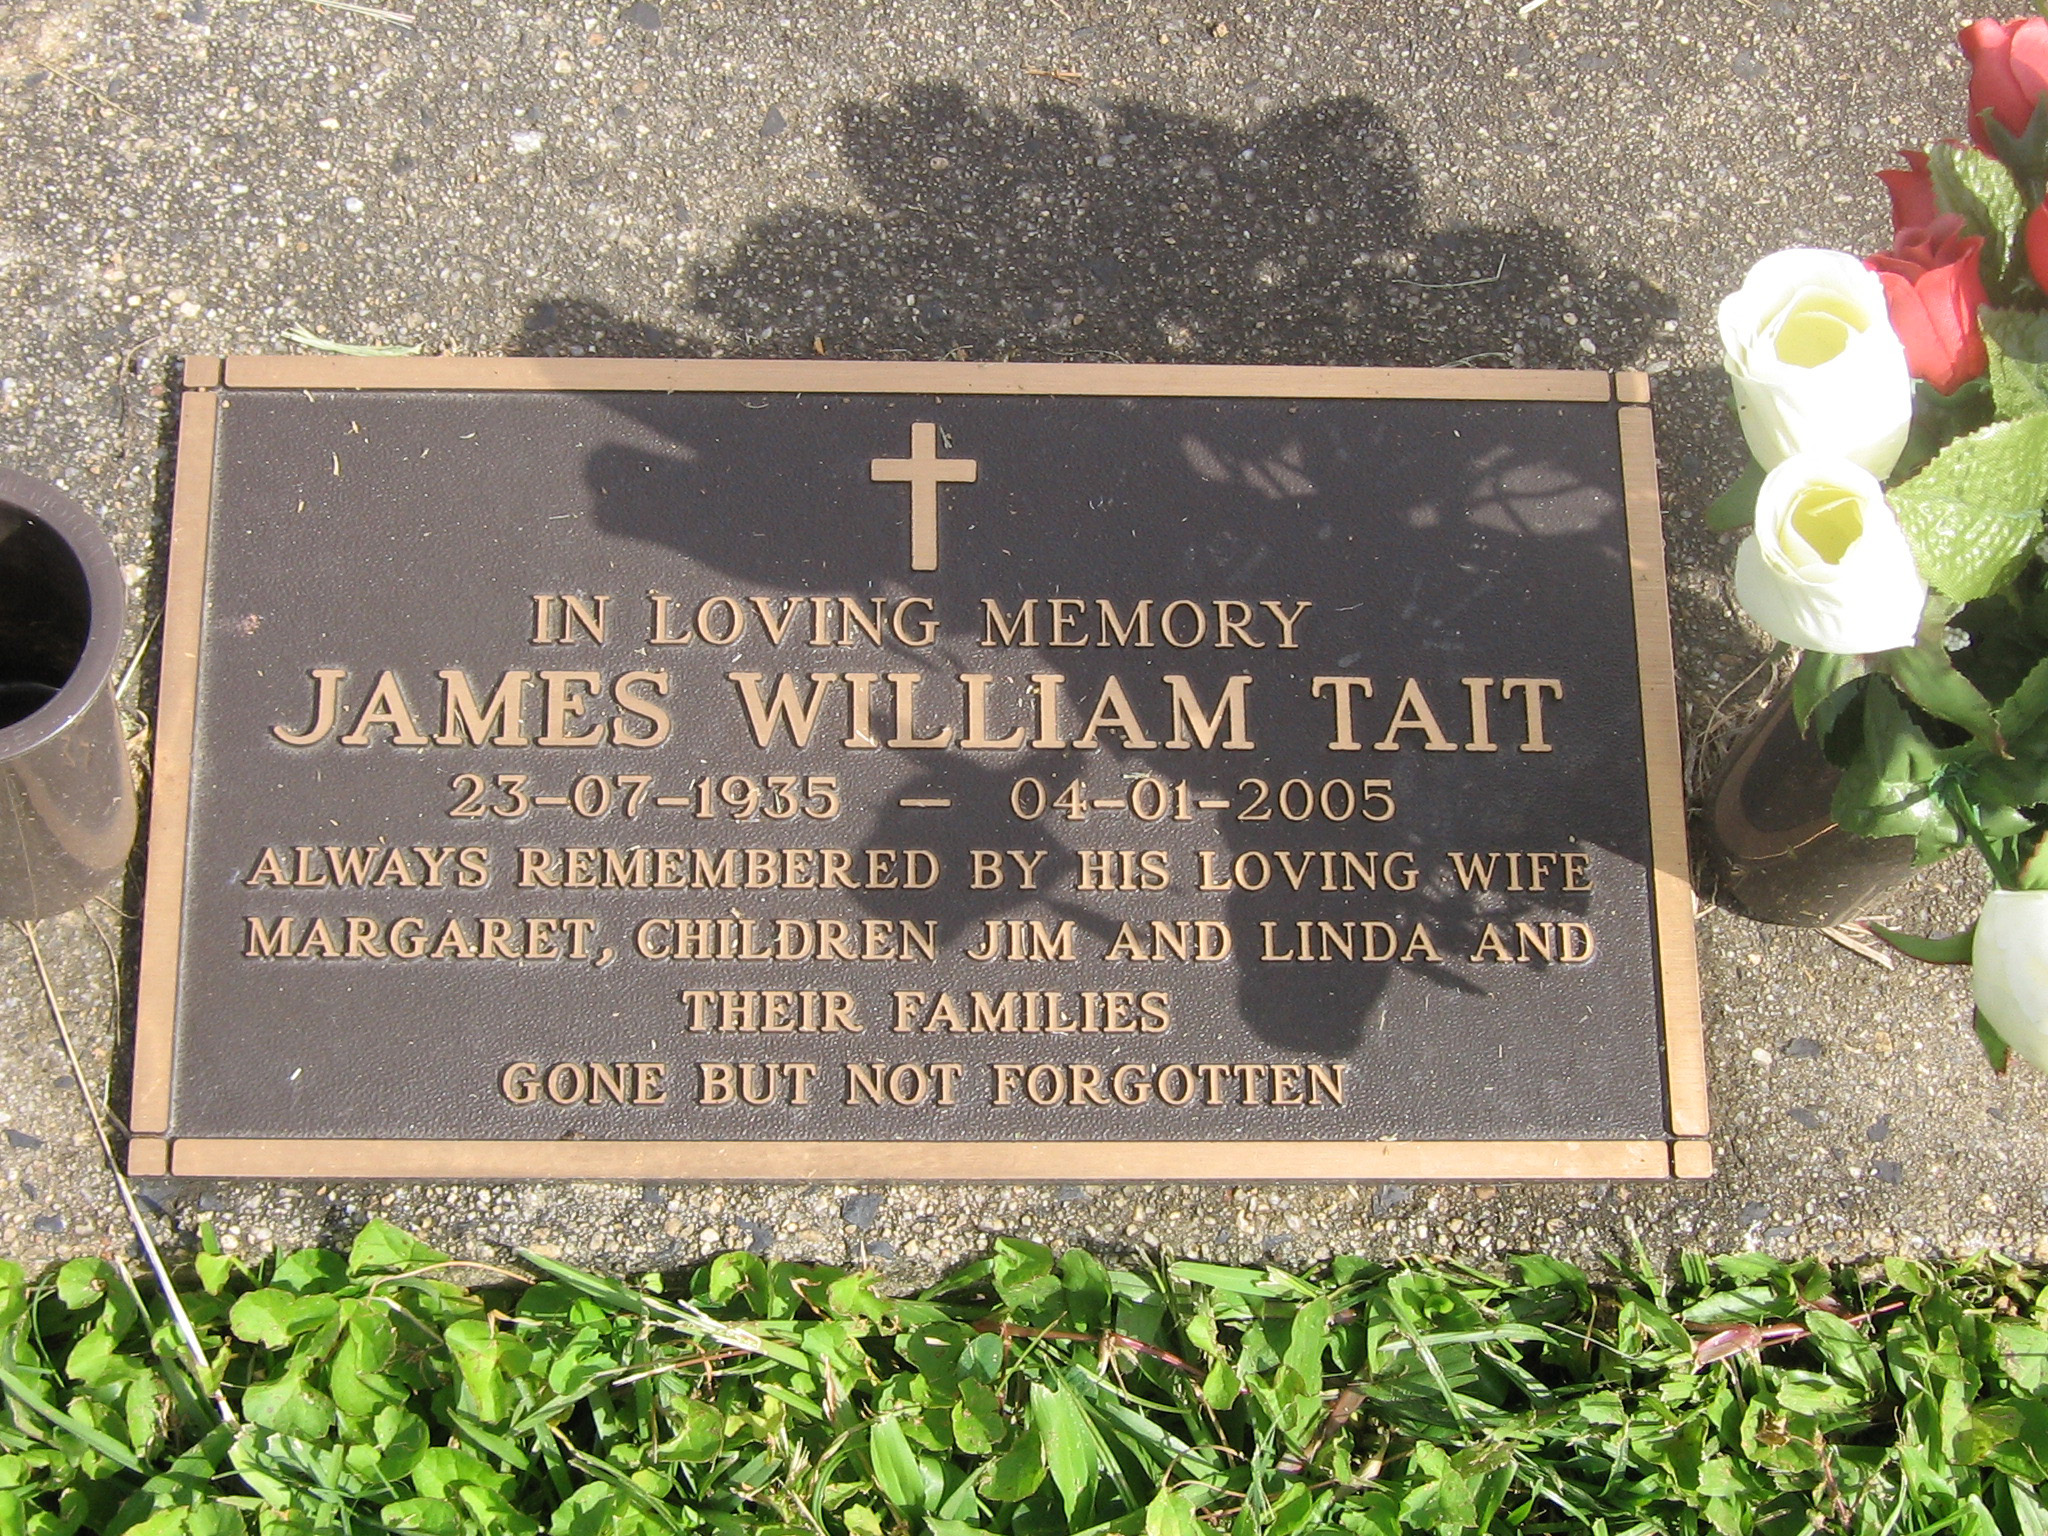 TAIT JAMES WILLIAM